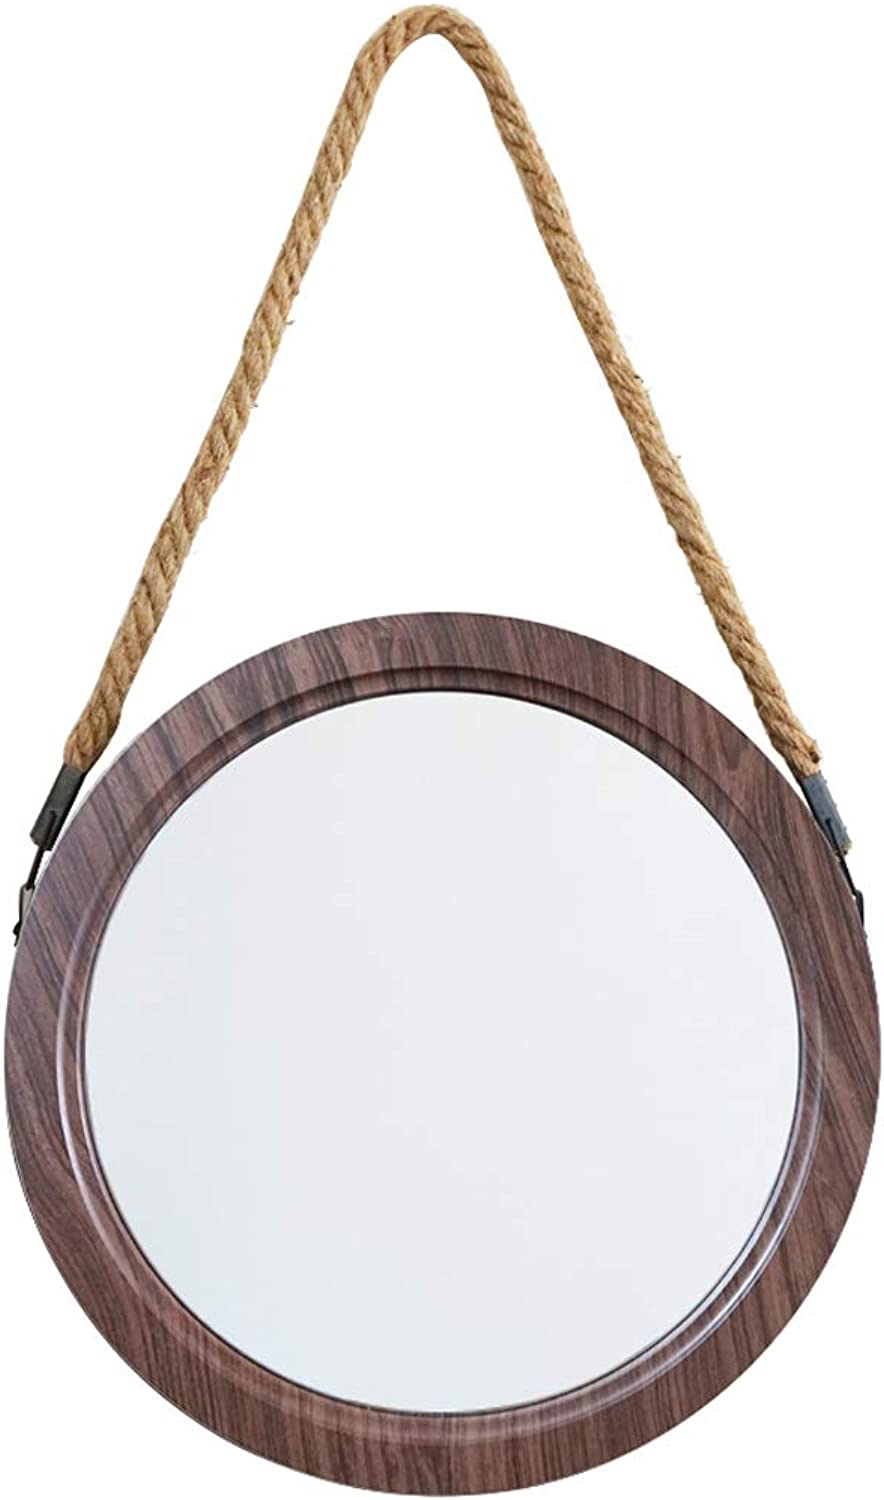 Hanging Mirror with Chain Makeup Mirror Round Wall Mirror Bathroom Shaving Mirror Bedroom Decoration